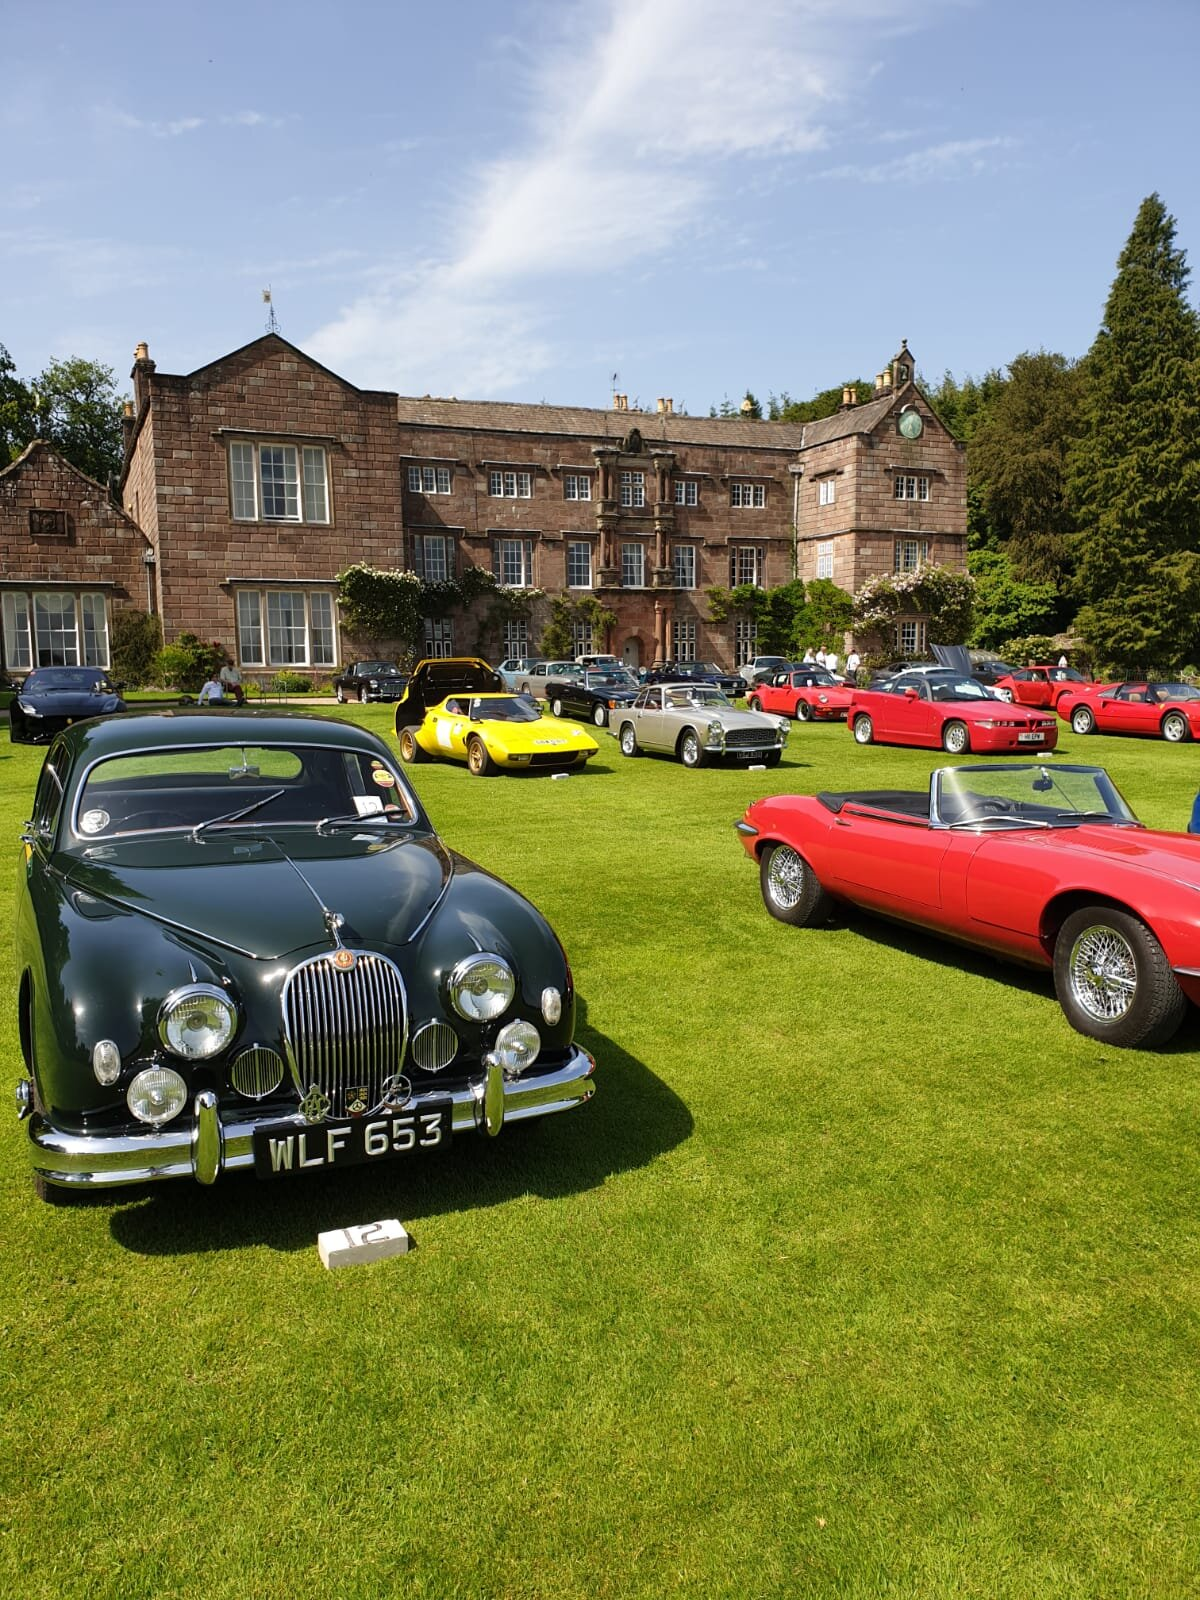 Classic car rally at Browsholme Hall!